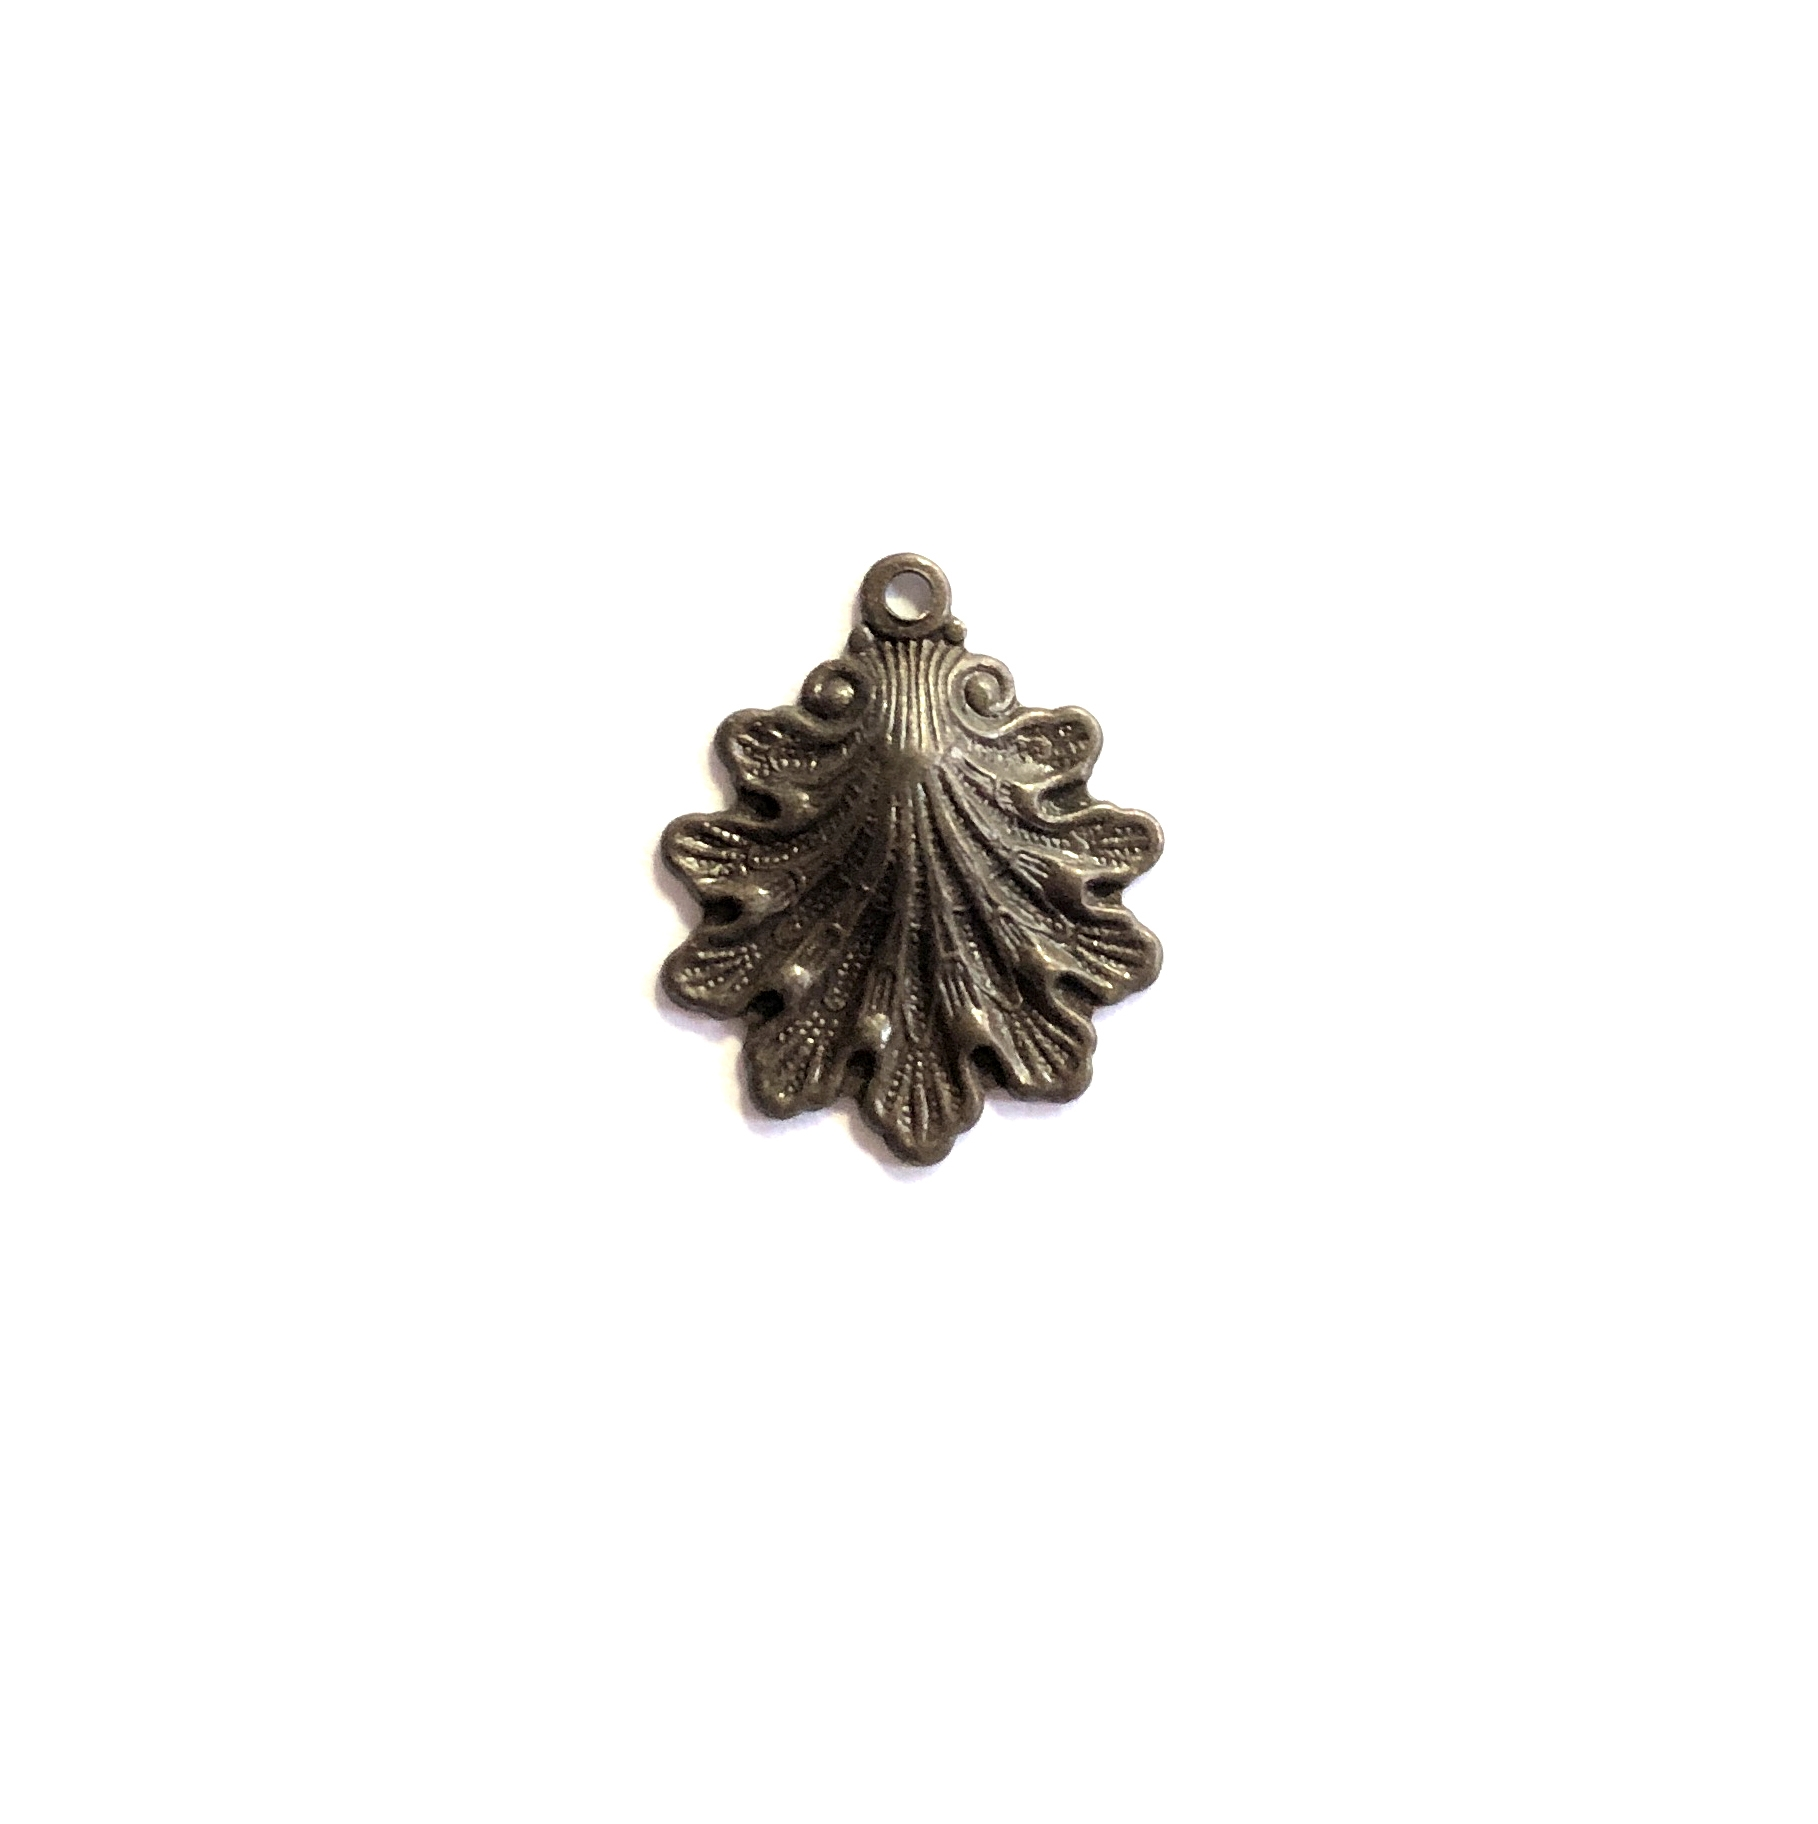 brass shell charm, choxie, 09926, chocolate brass, choxie, jewelry making, 15x14mm, B'sue Boutiques, nickel free jewelry supplies, vintage jewelry supplies, US made jewelry supplies, beach, shell, sea shell, ocean